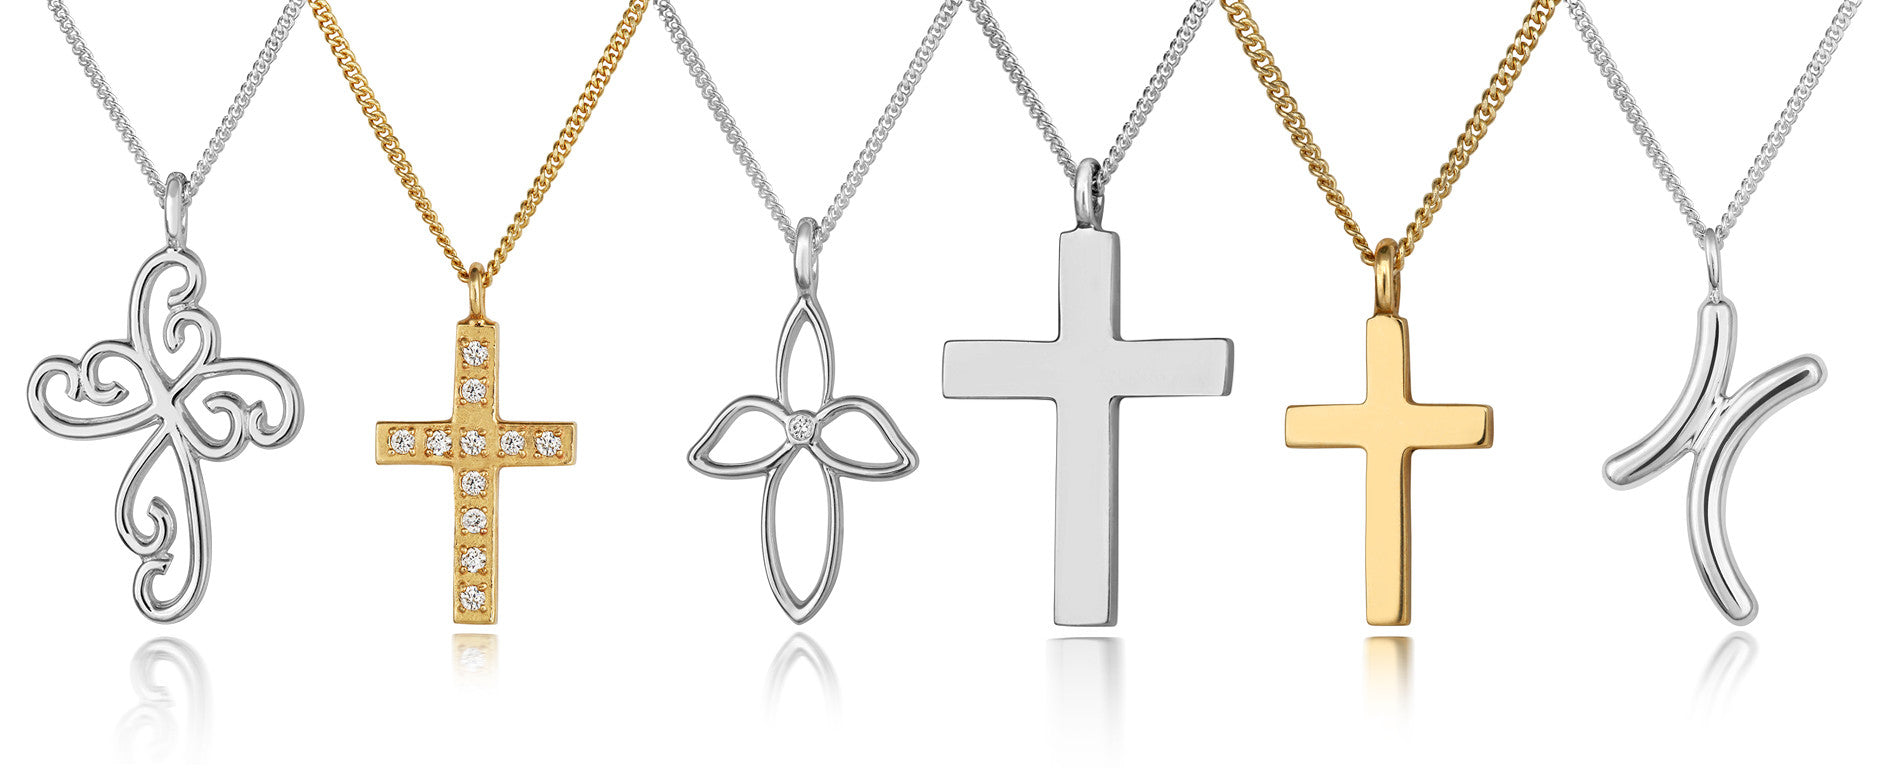 Silver Petite Cross Pendant - CRED Jewellery - Fairtrade Jewellery - 2